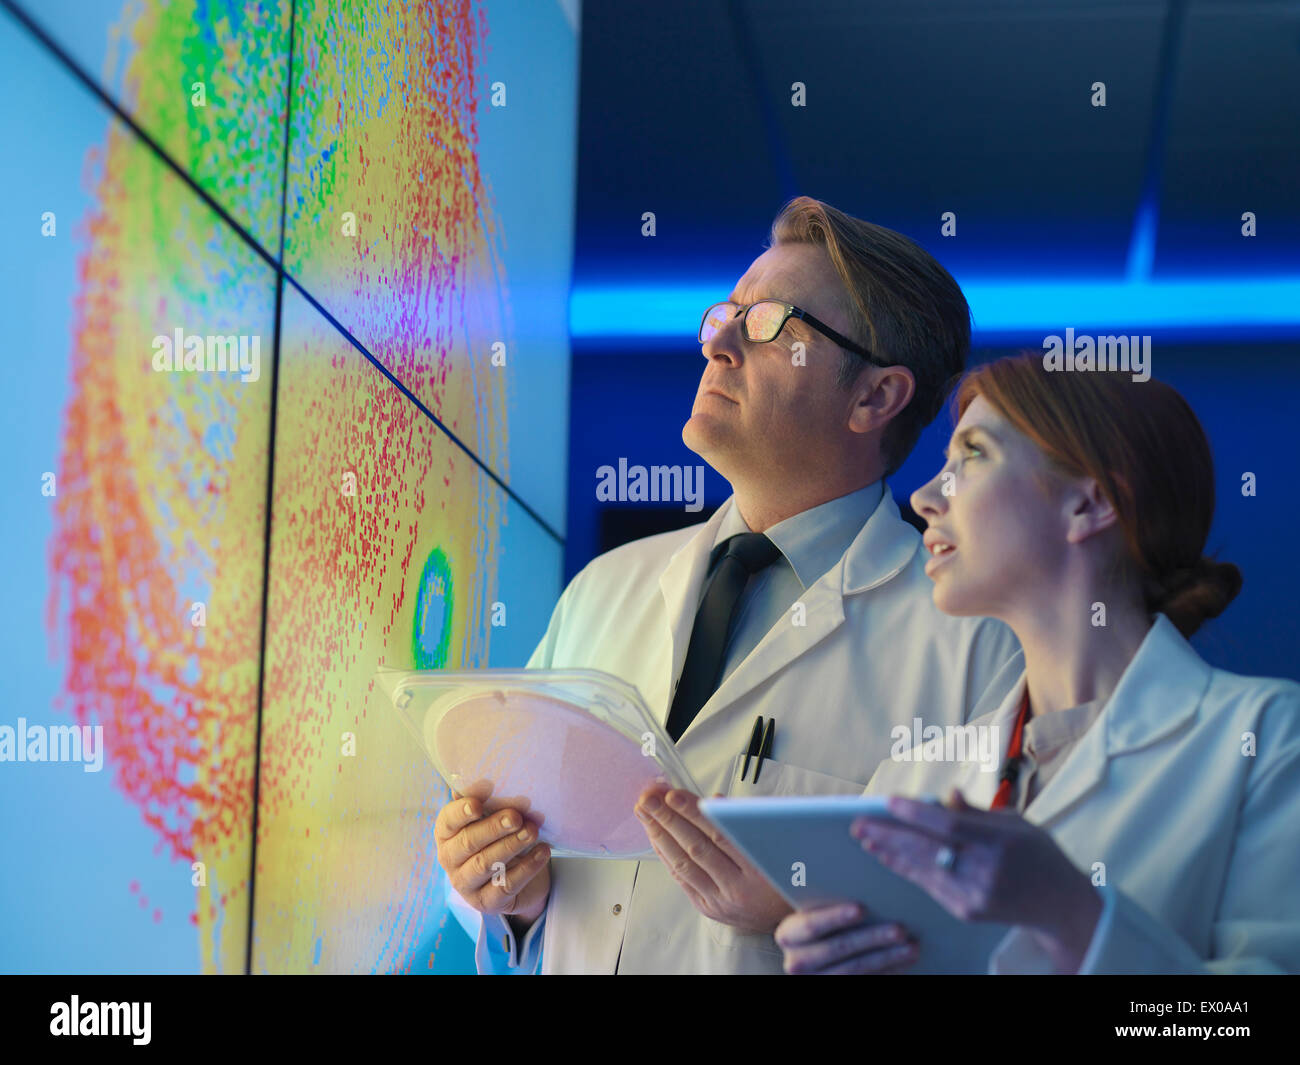 Scientists with silicon wafer studying graphical display of wafer on screens - Stock Image